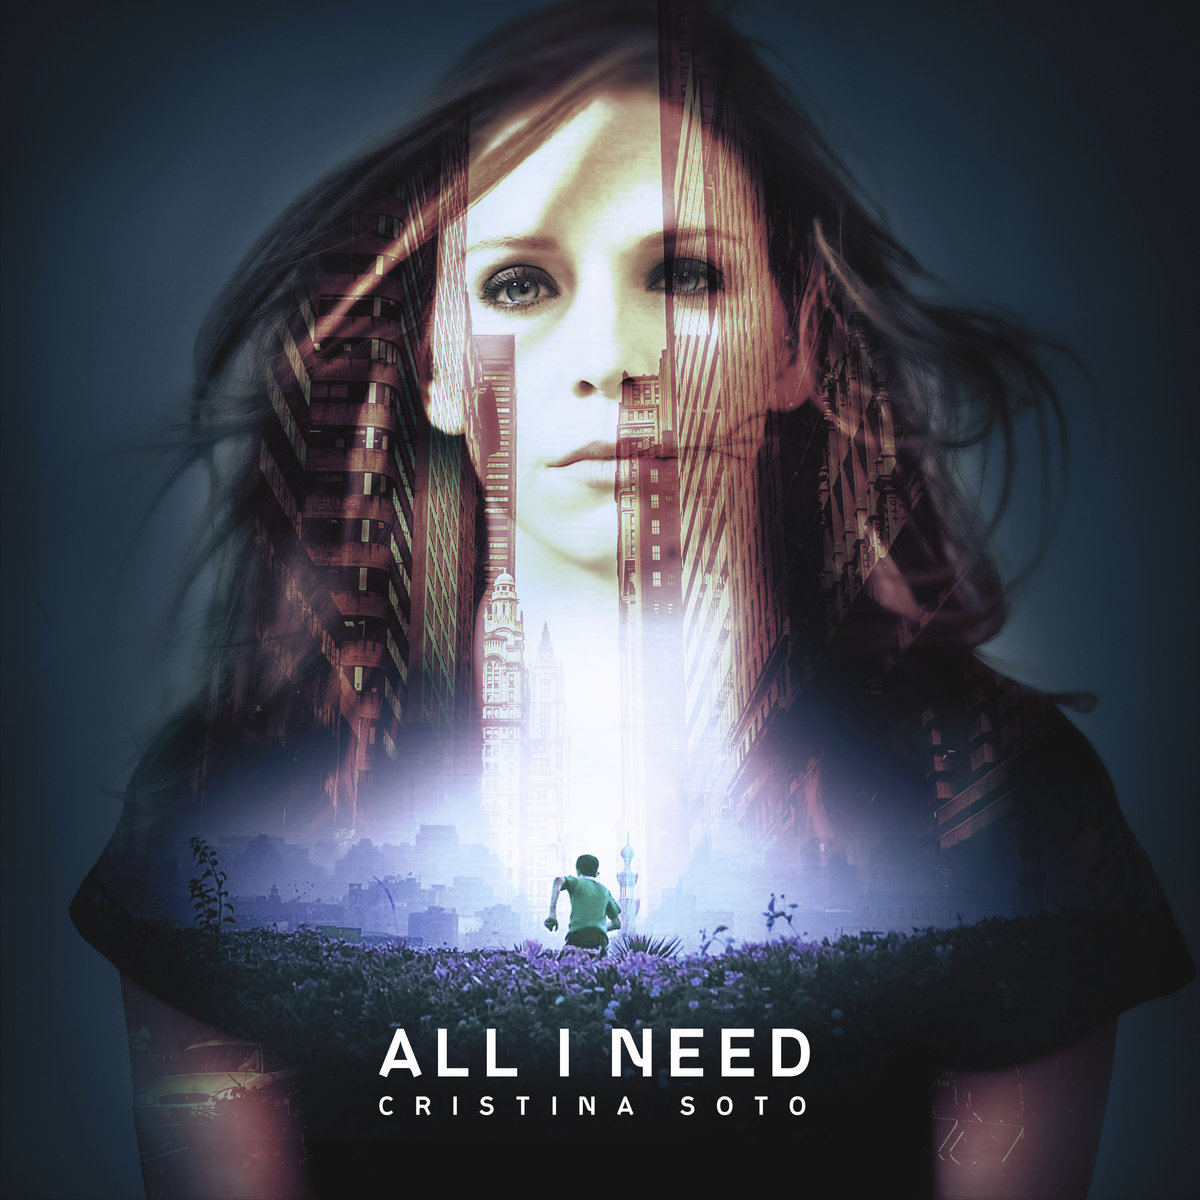 Cristina Soto - All I Need @ 'All I Need' album (Austin)